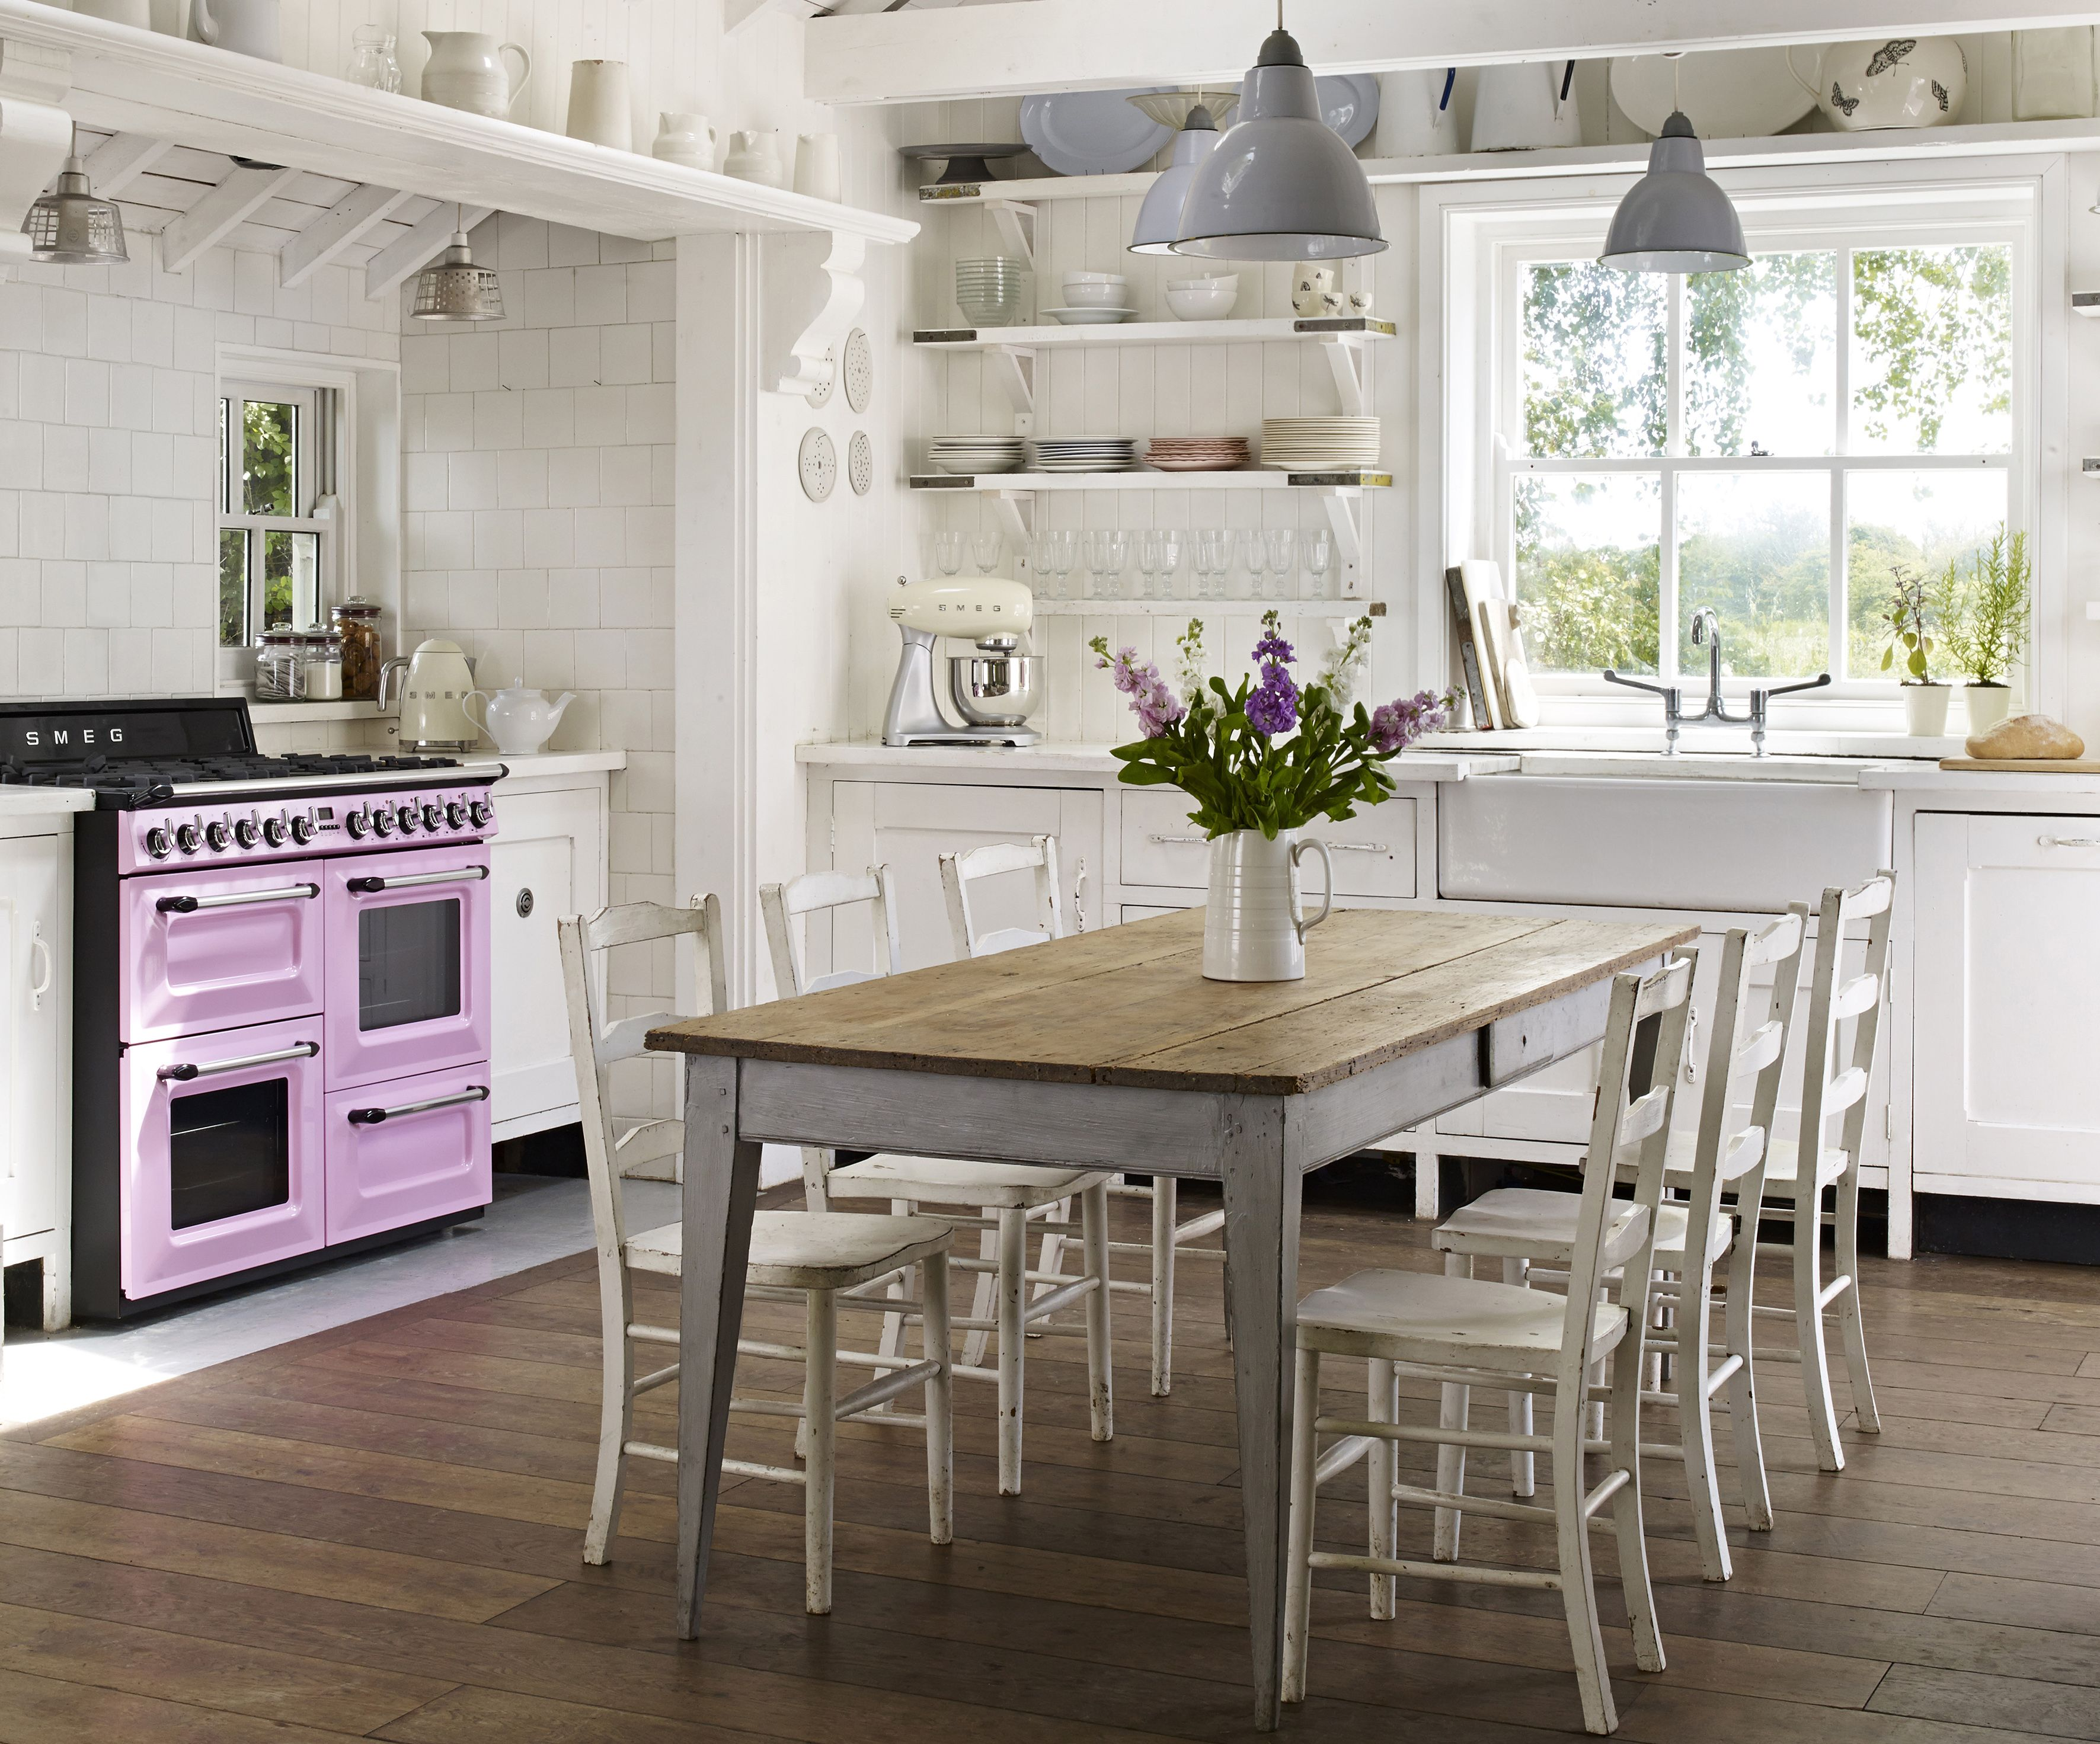 Think pink with the fabulous TR4110 Victoria range cooker from Smeg ...